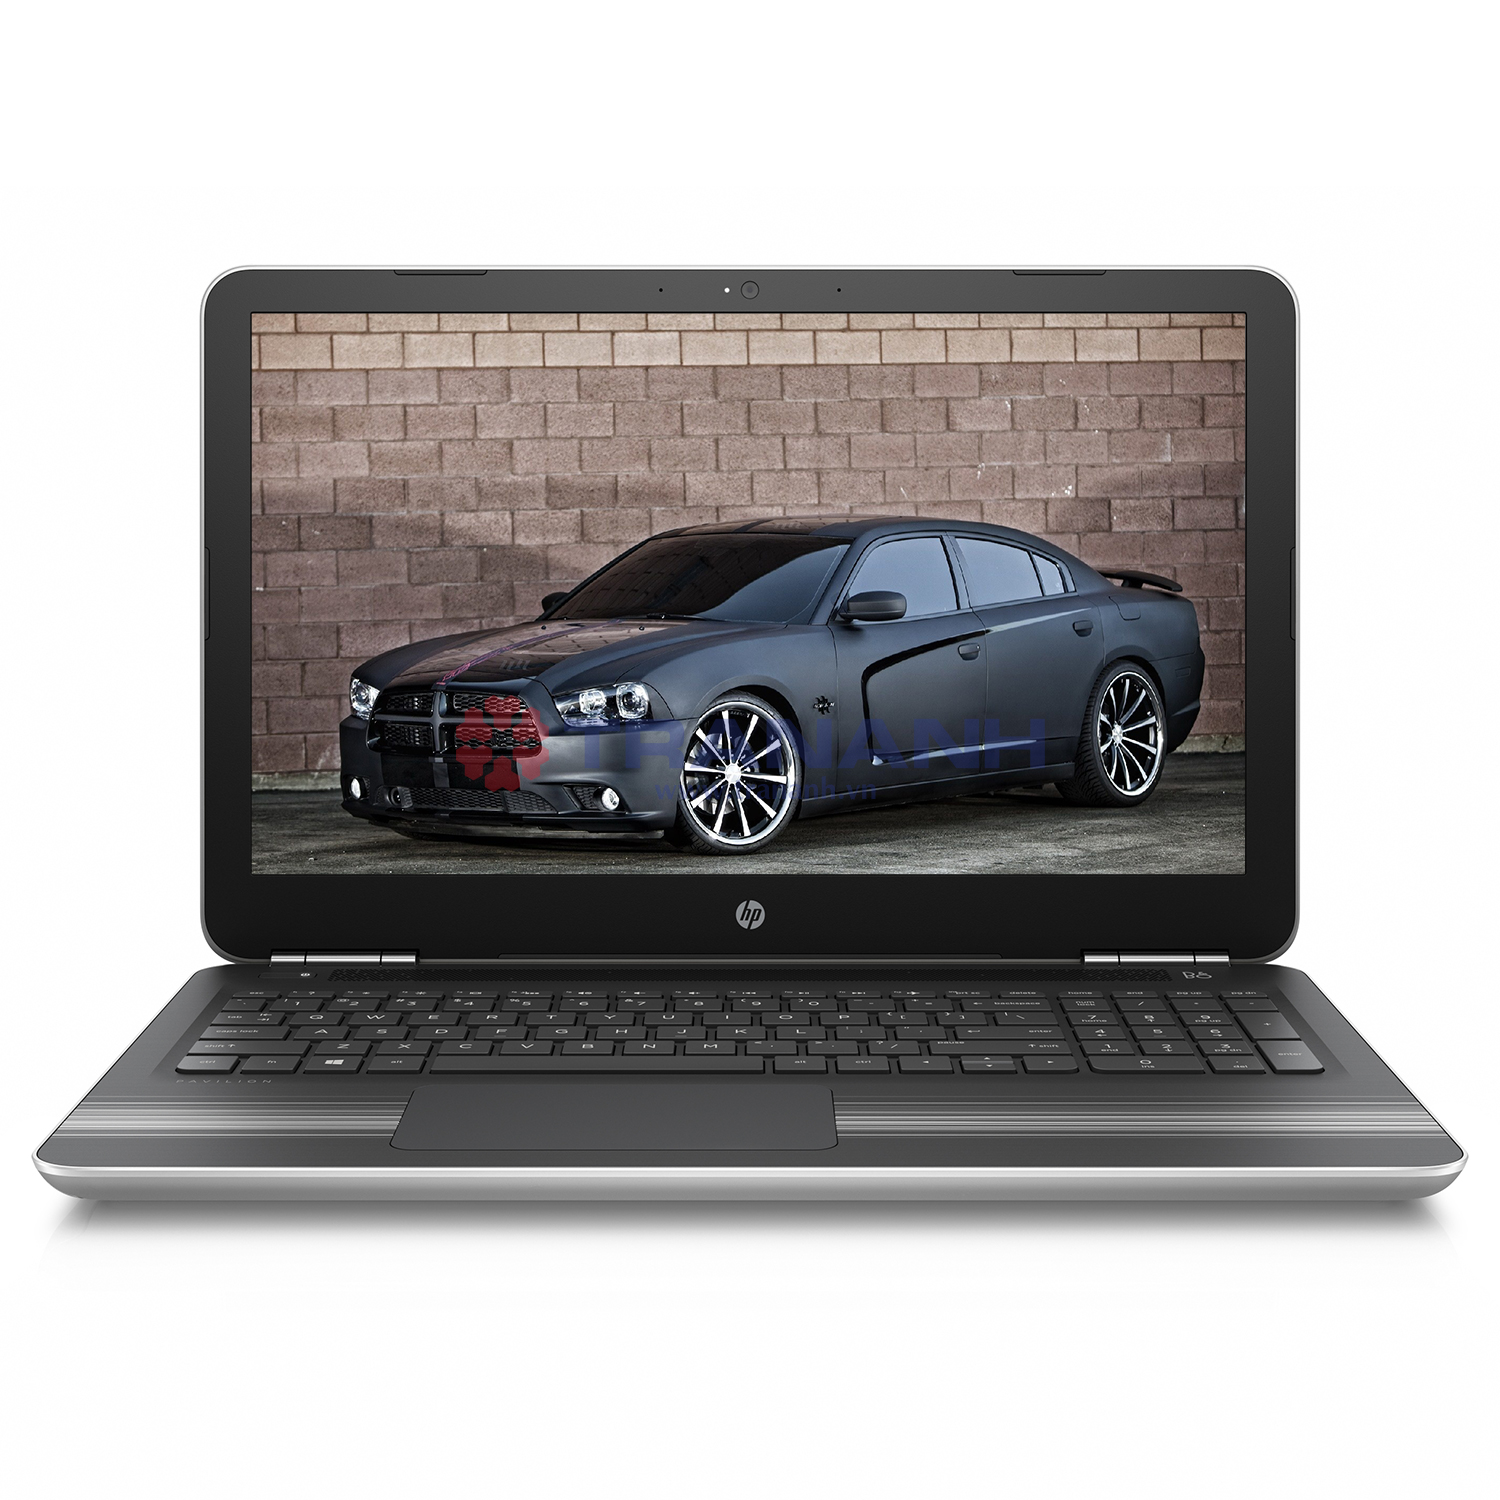 HP 15-ay538TU (1AC62PA) Core i3-6006U/4GB/500GB/DVDSM/Intel HD Graphics/15.6 HD 4cell/Free